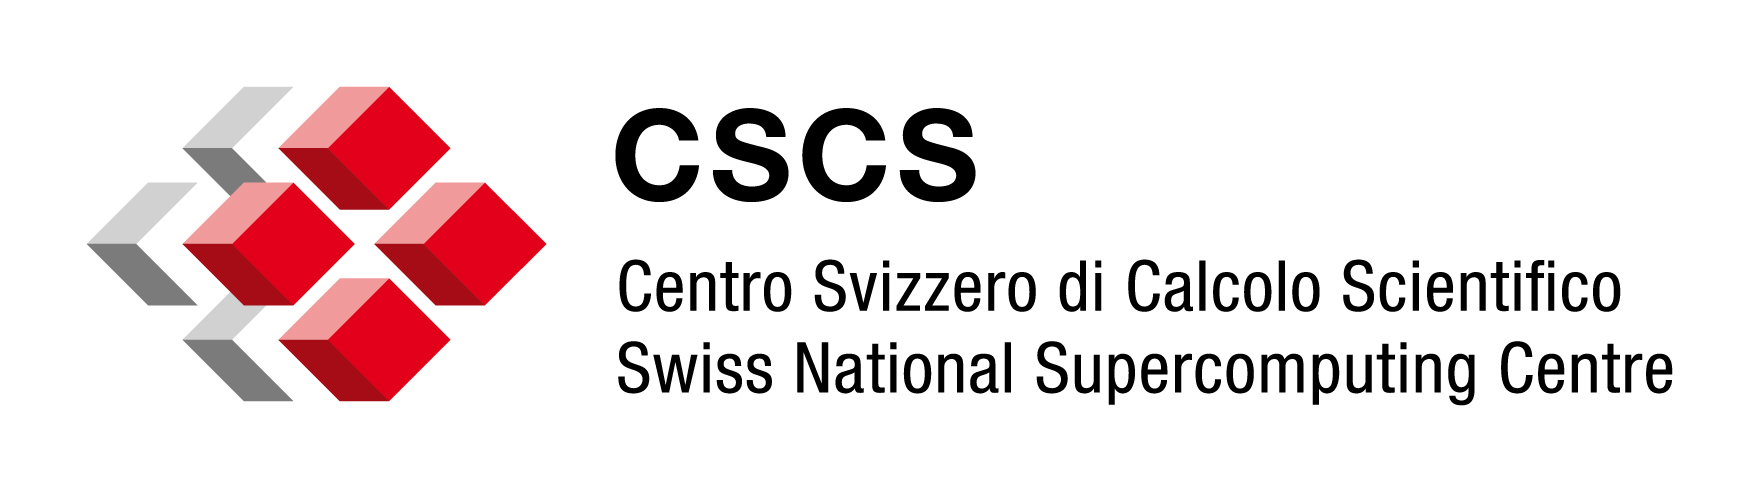 "CSCS Webinar on ""How to collect the performance data for proposal submission"""